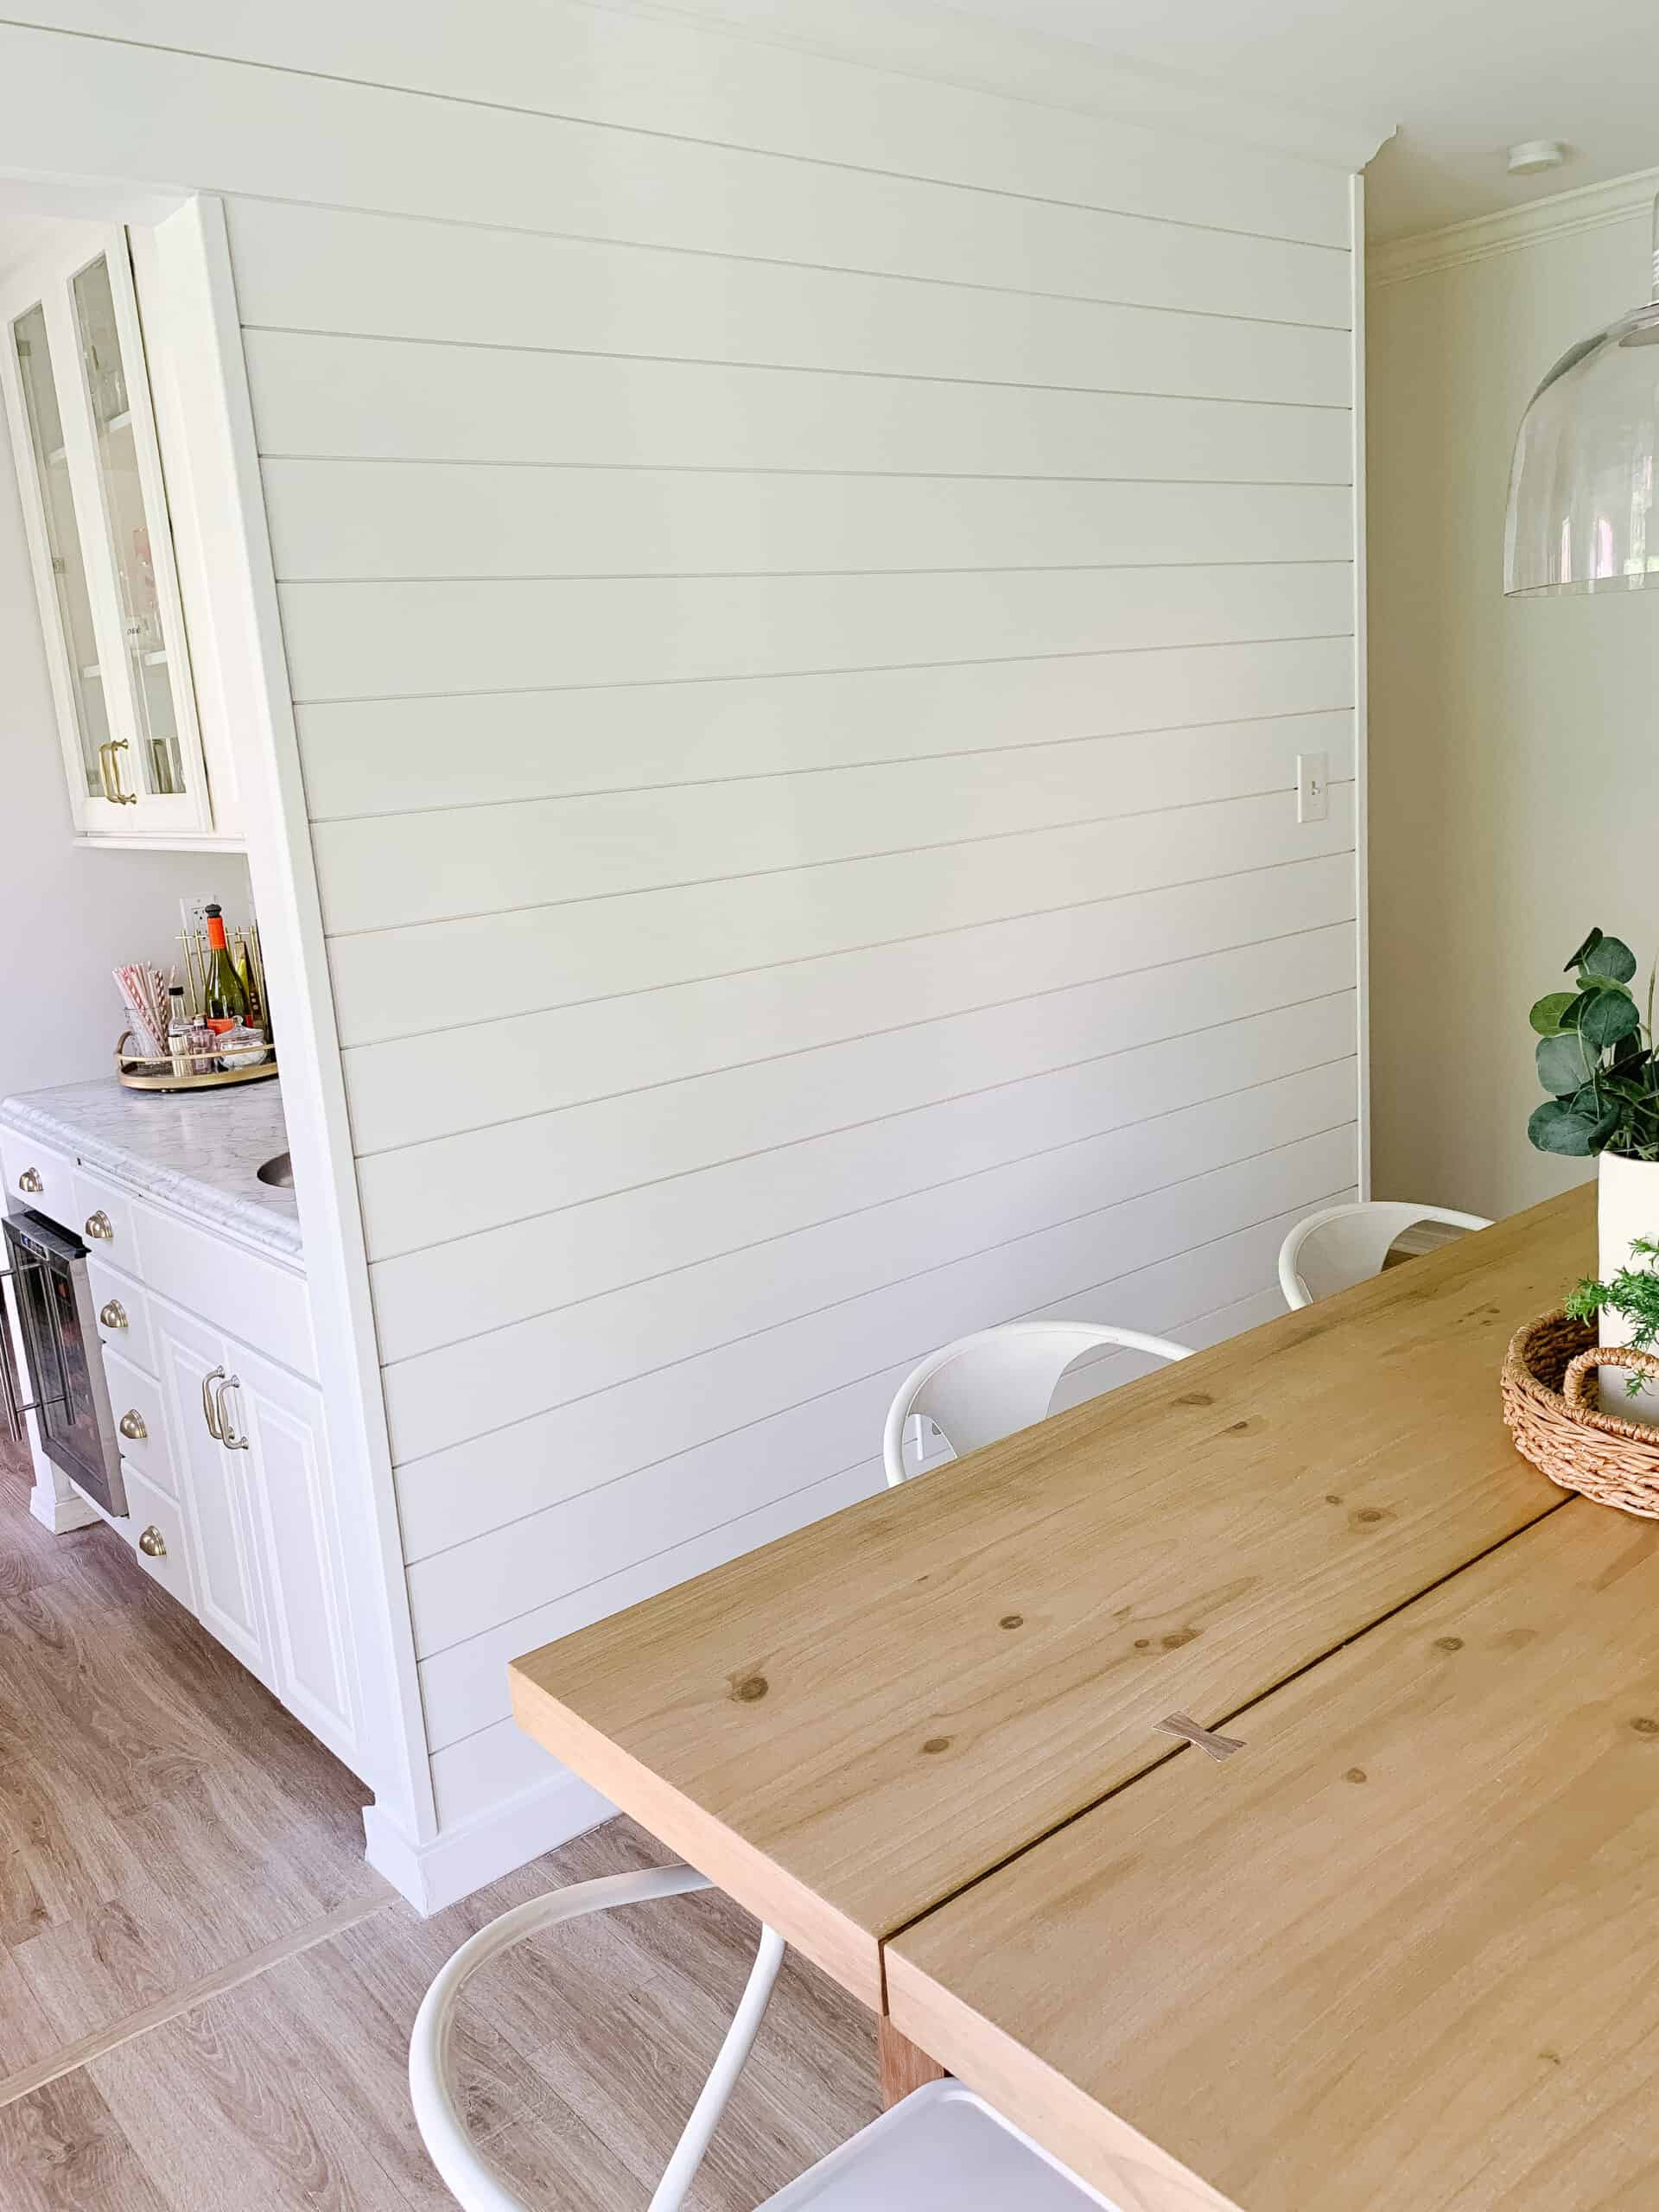 Shiplap on wall in kitchen